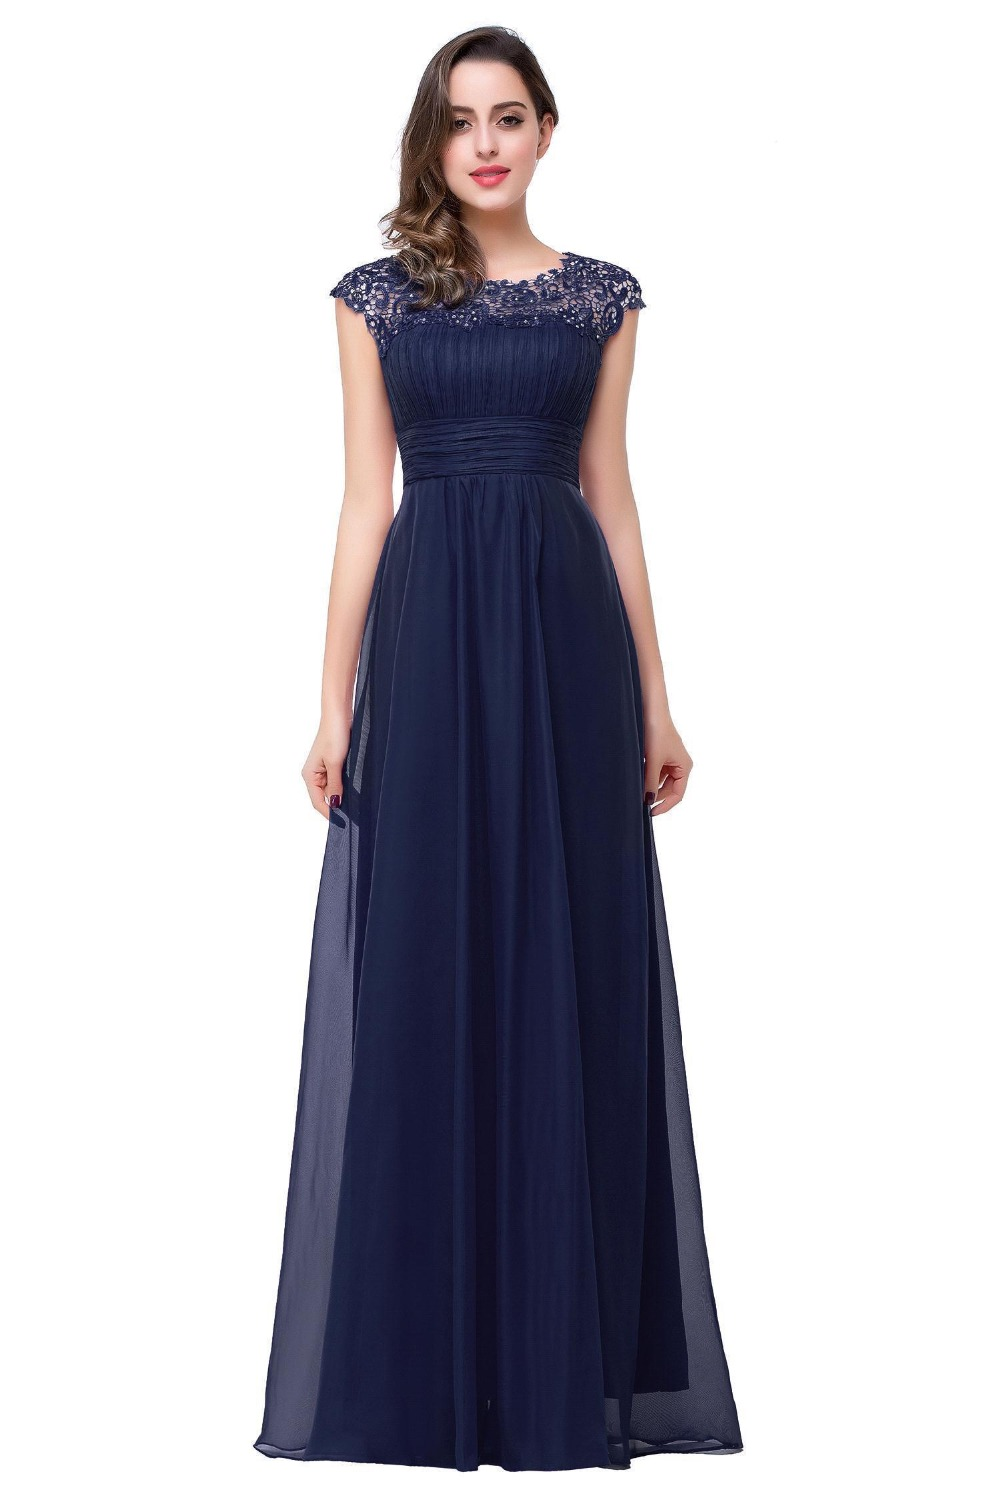 Aliexpress buy robe demoiselle dhonneur red lace bridesmaid aliexpress buy robe demoiselle dhonneur red lace bridesmaid dresses long 2017 cheap navy blue bridesmaid dress for wedding vestido madrinha from ombrellifo Gallery